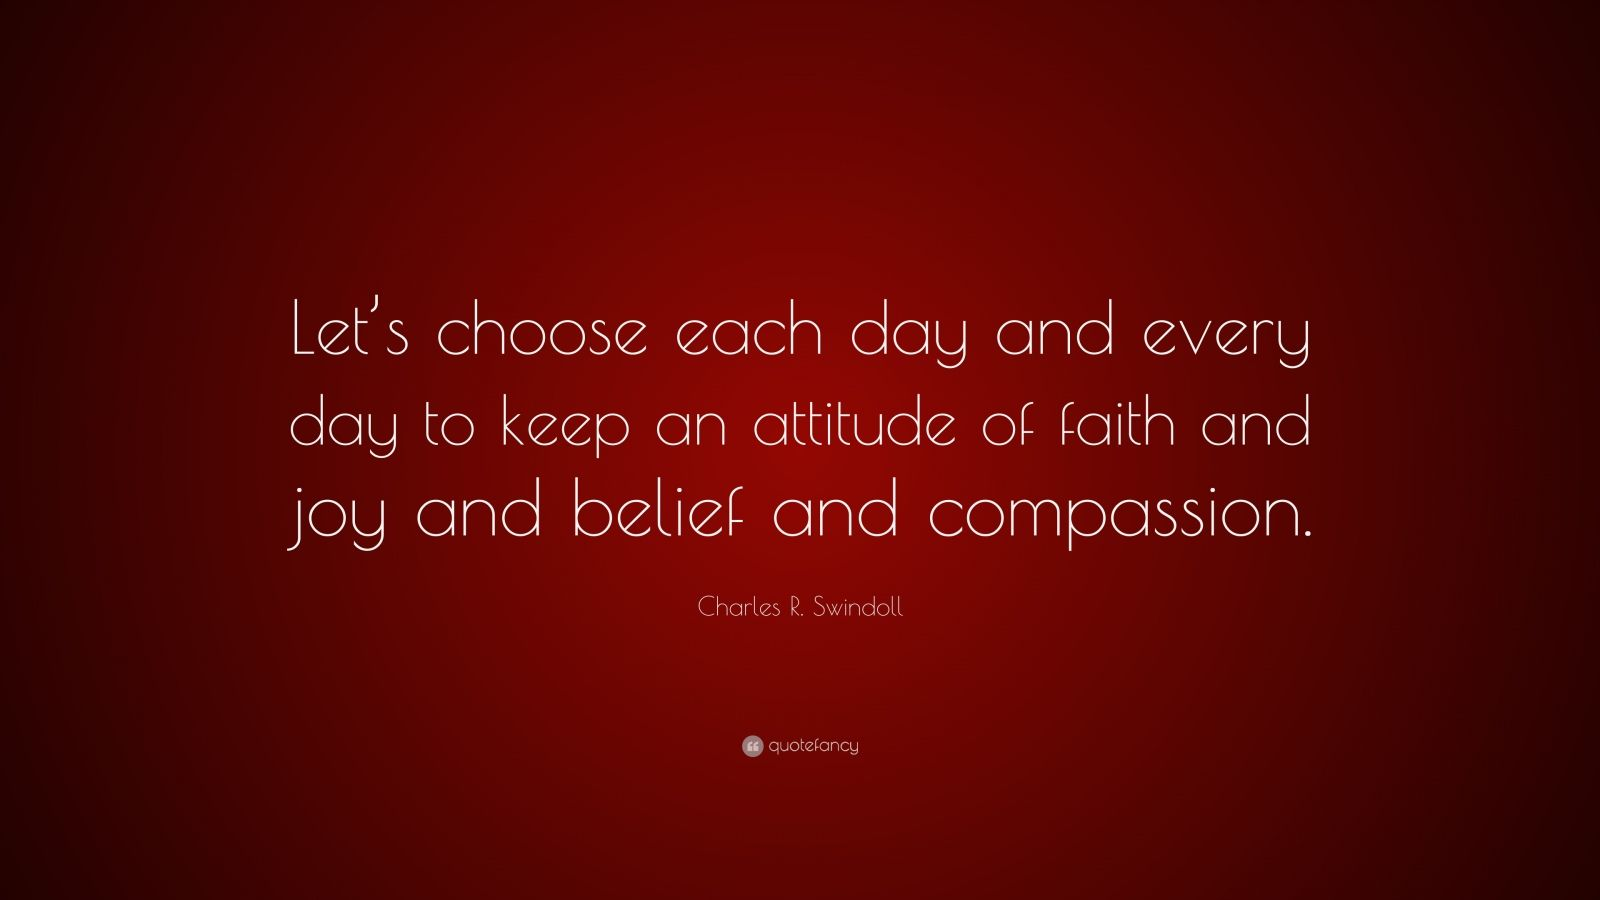 "Charles R. Swindoll Quote: ""Let's choose each day and every day to keep an attitude of faith and joy and belief and compassion."""